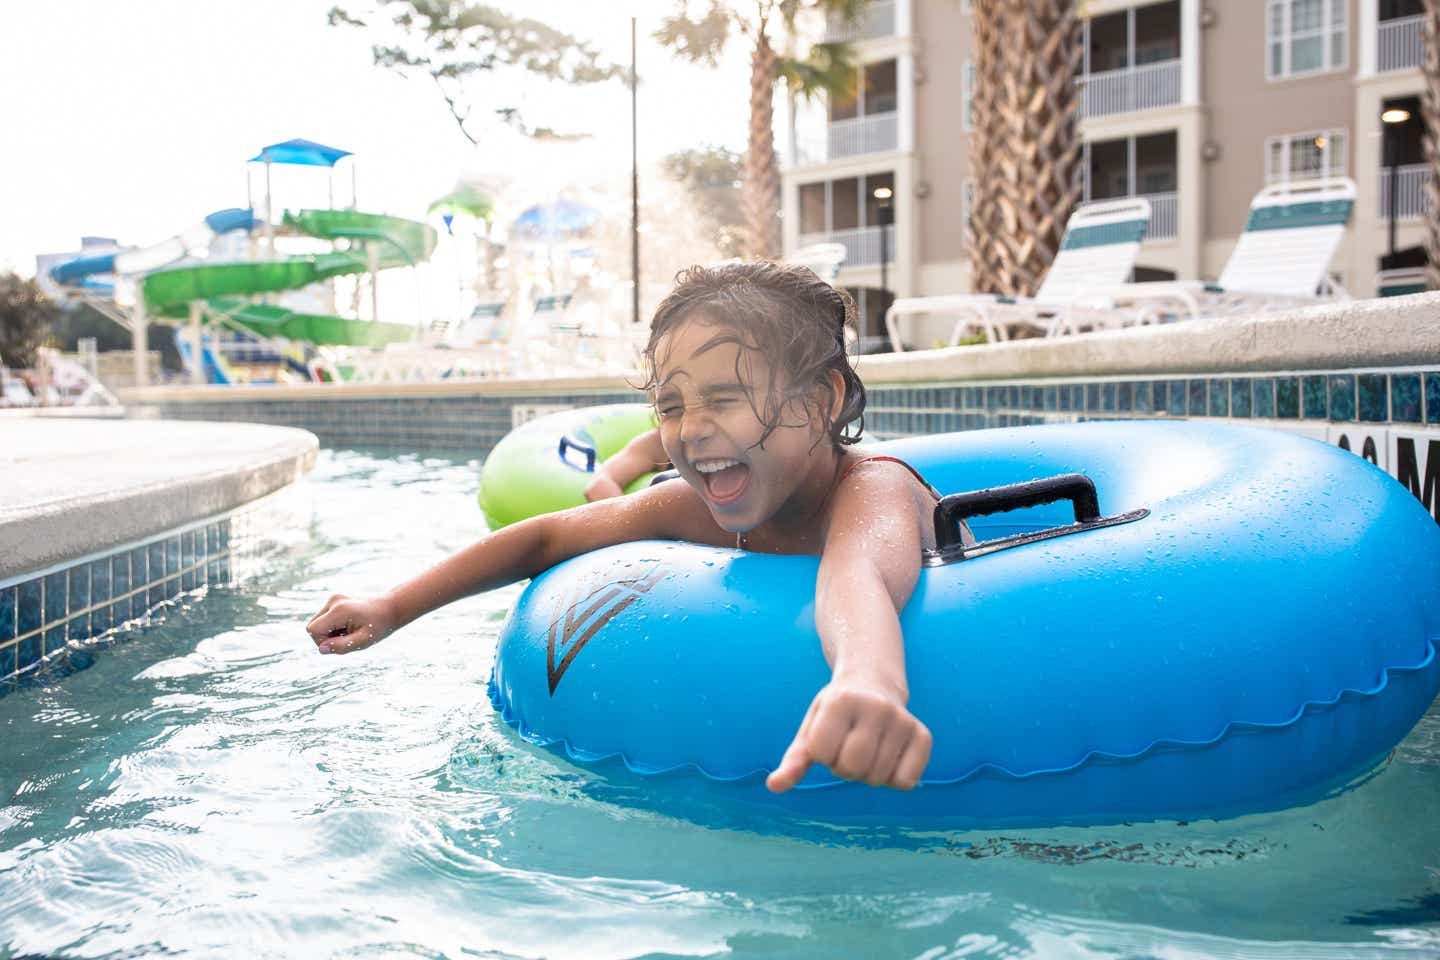 Brenda's daughter, Victoria, floats along the lazy river in a blue innertube.